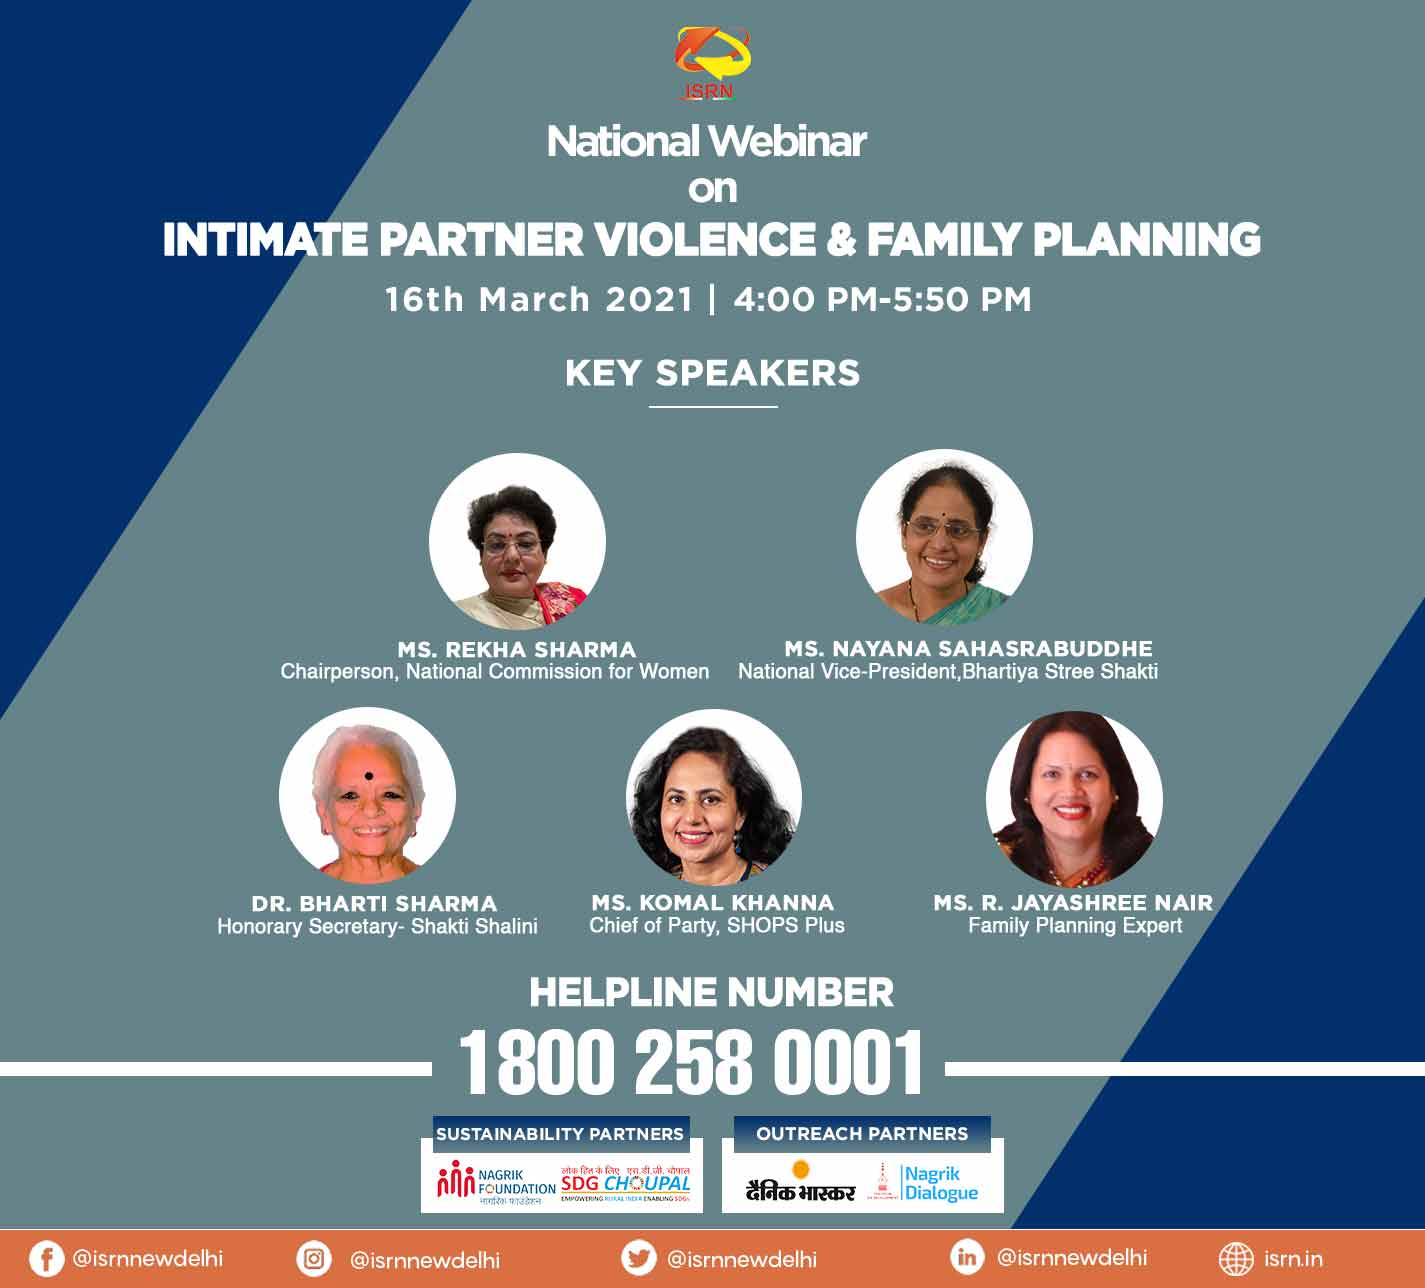 Intimate Partner Violence and Family Planning